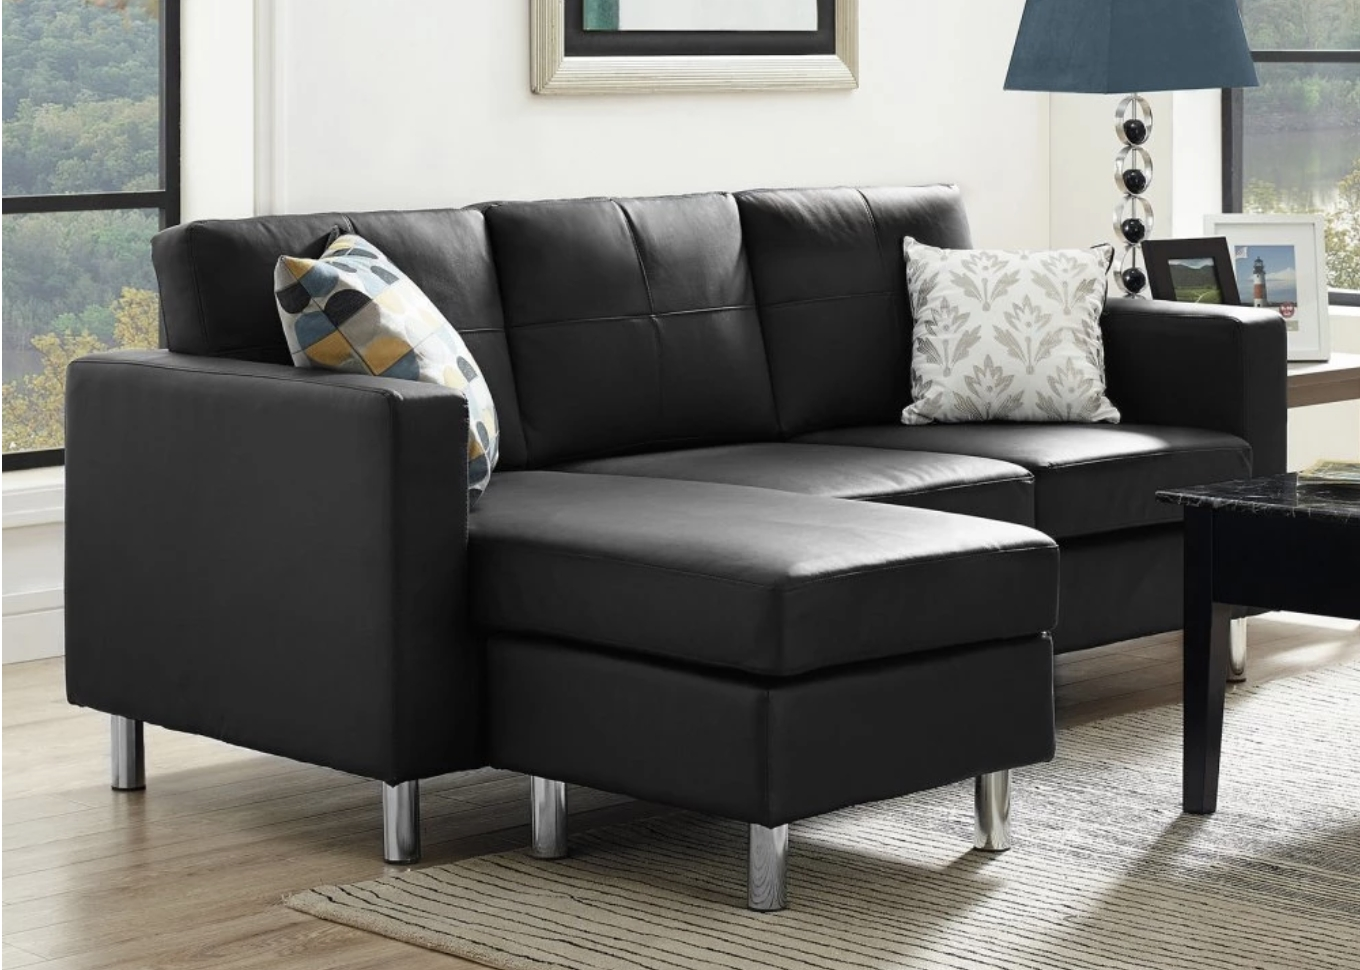 75 Modern Sectional Sofas For Small Spaces (2018) regarding Small Spaces Sectional Sofas